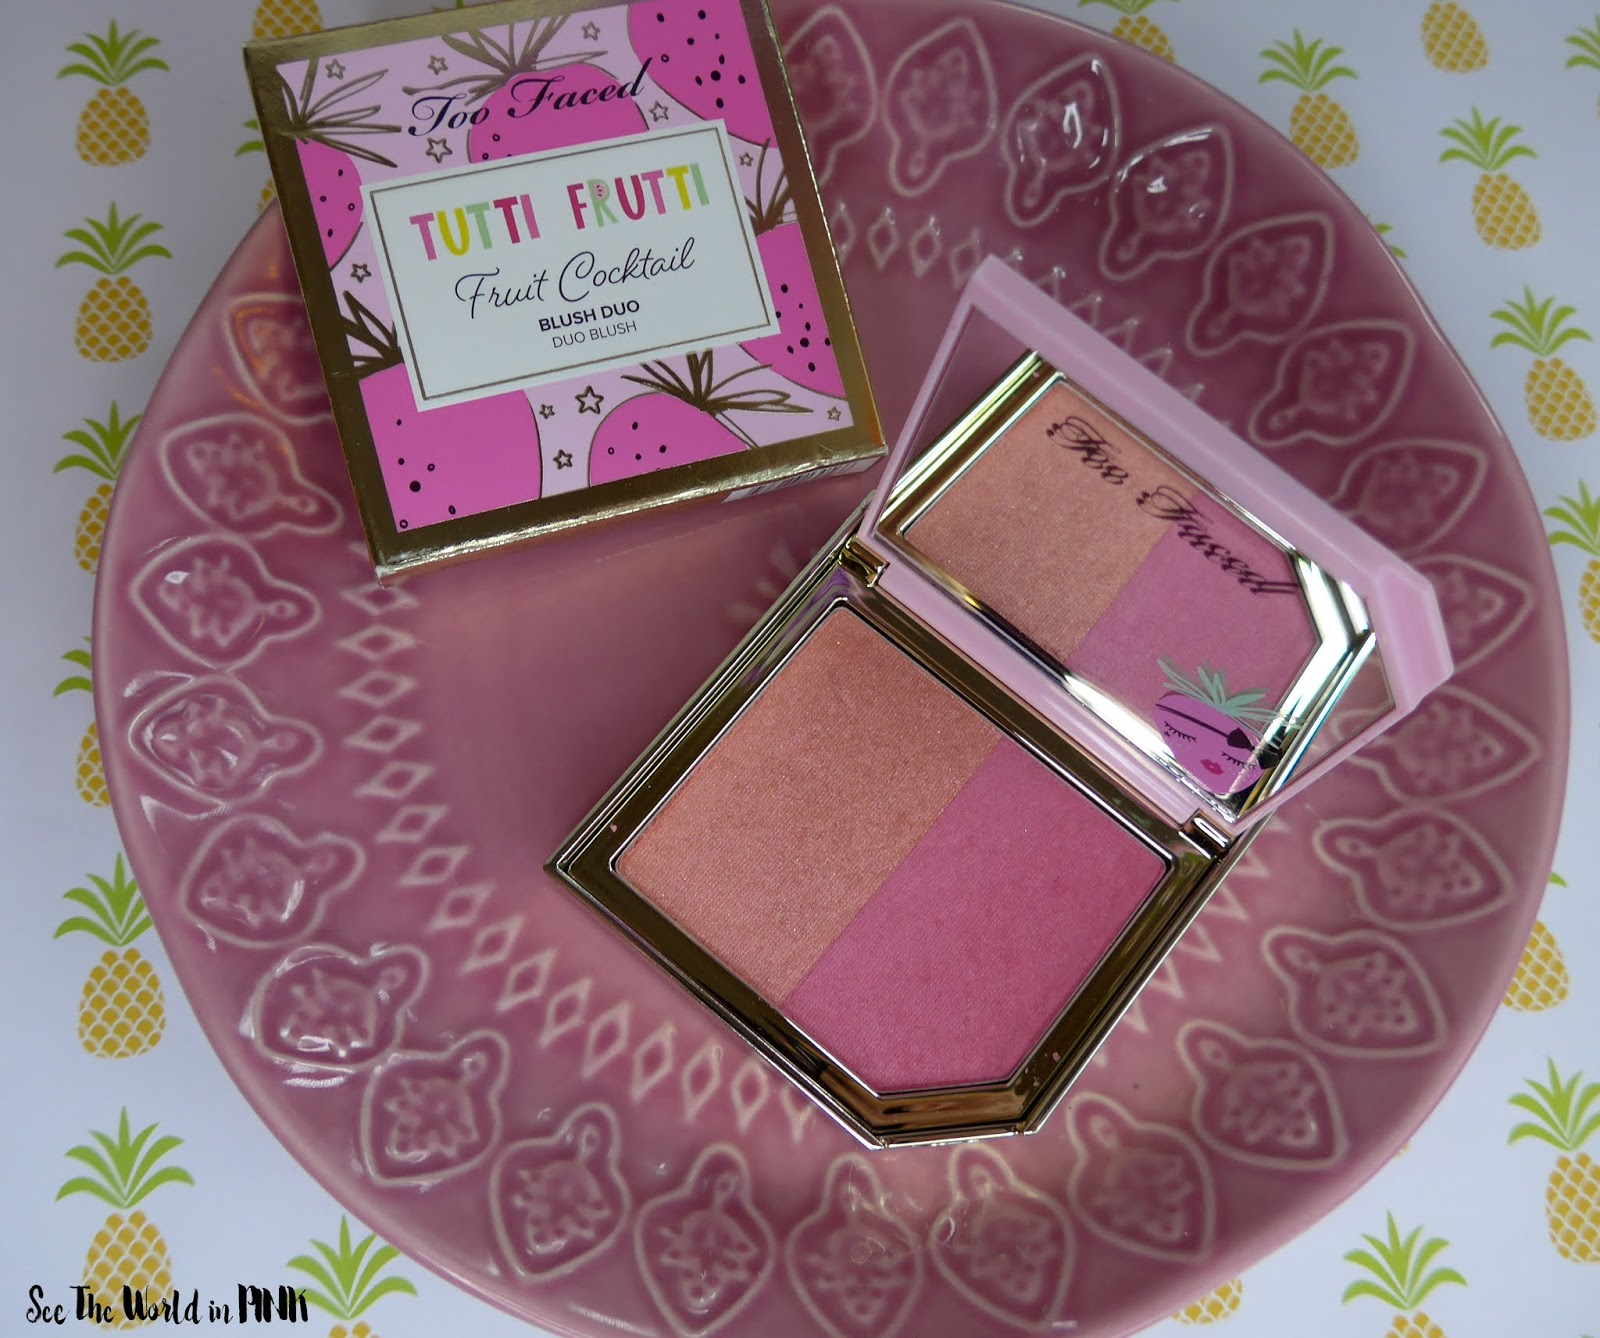 Too Faced Tutti Frutti Collection - Fruit Cocktail Blush Duo Strobeberry